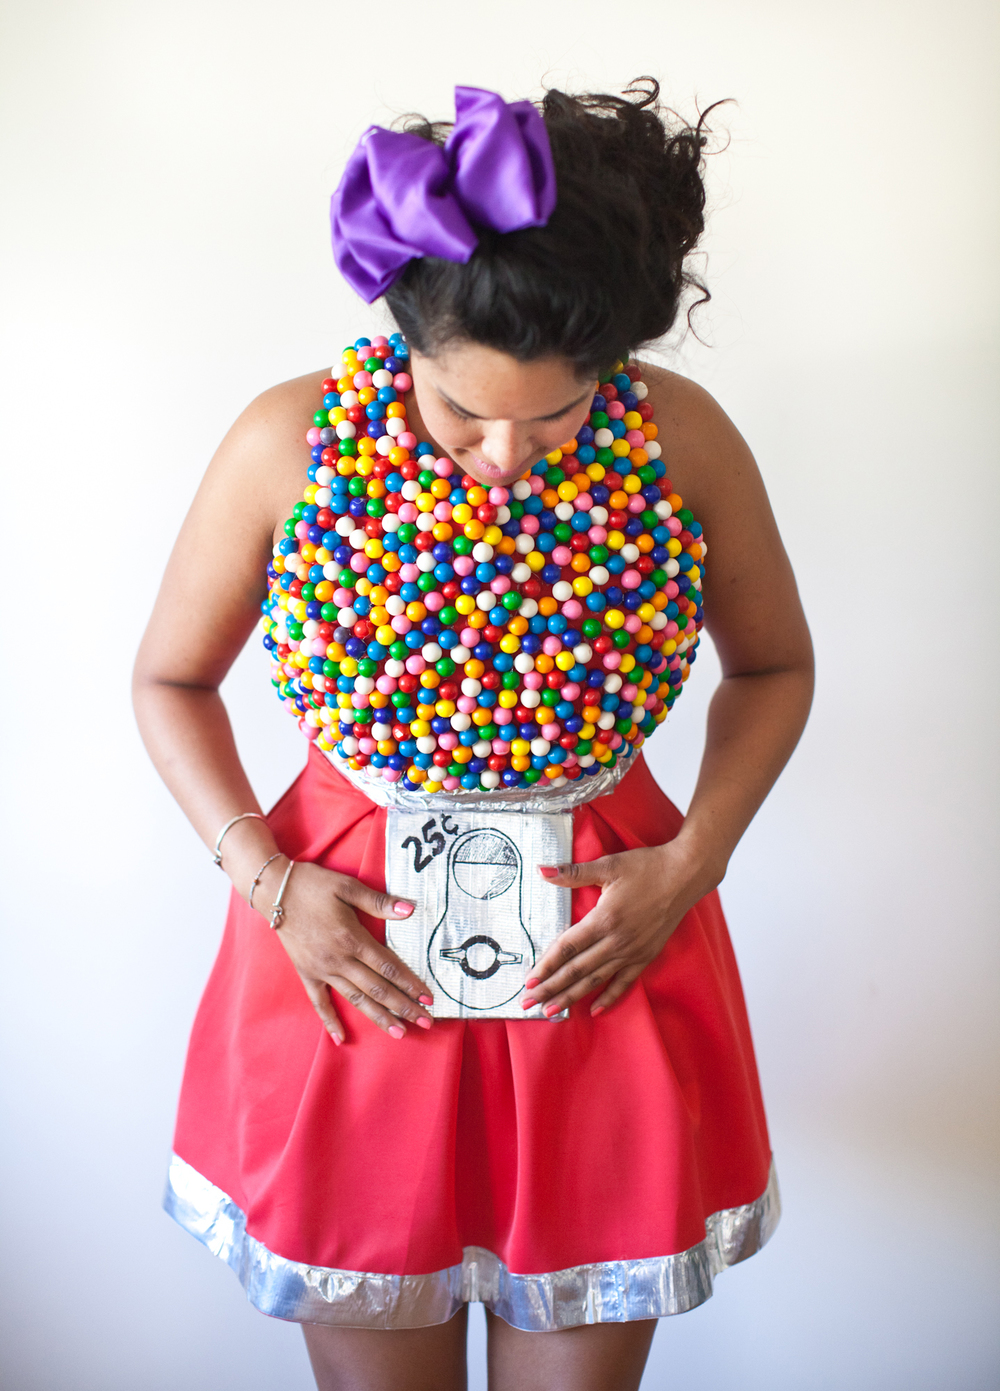 Thanks to my lovely sister here's a tutorial on how to make your very own gumball machine costume!     -   Duck Tape      -  1 black sharpie pen      -  2 to 3 bags of machine size gumballs      -5.5 x 6.5 inch cardboard piece     - Red Dress     - Hot glue gun